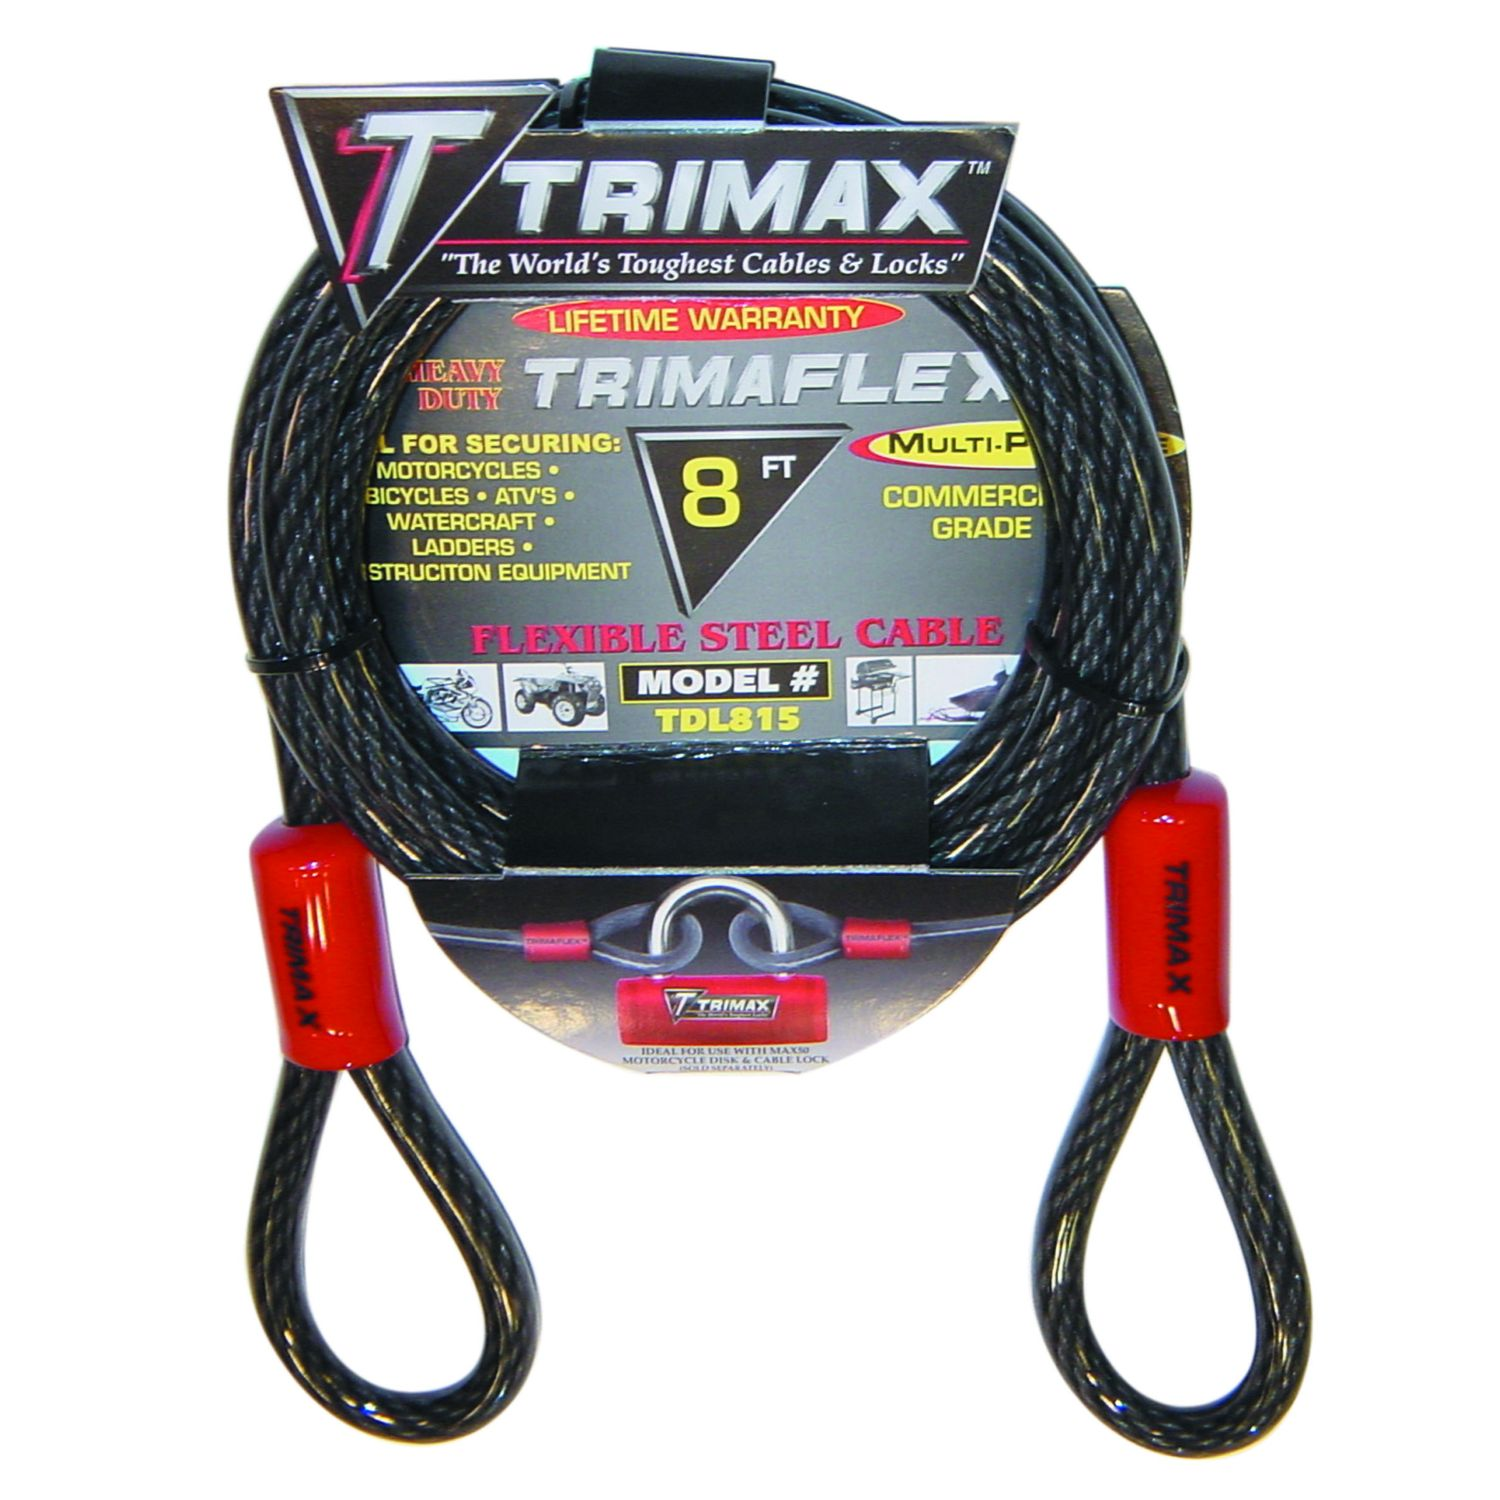 Trimax Trimaflex Dual Loop Multi-Use Cable 8 ft x 15 mm